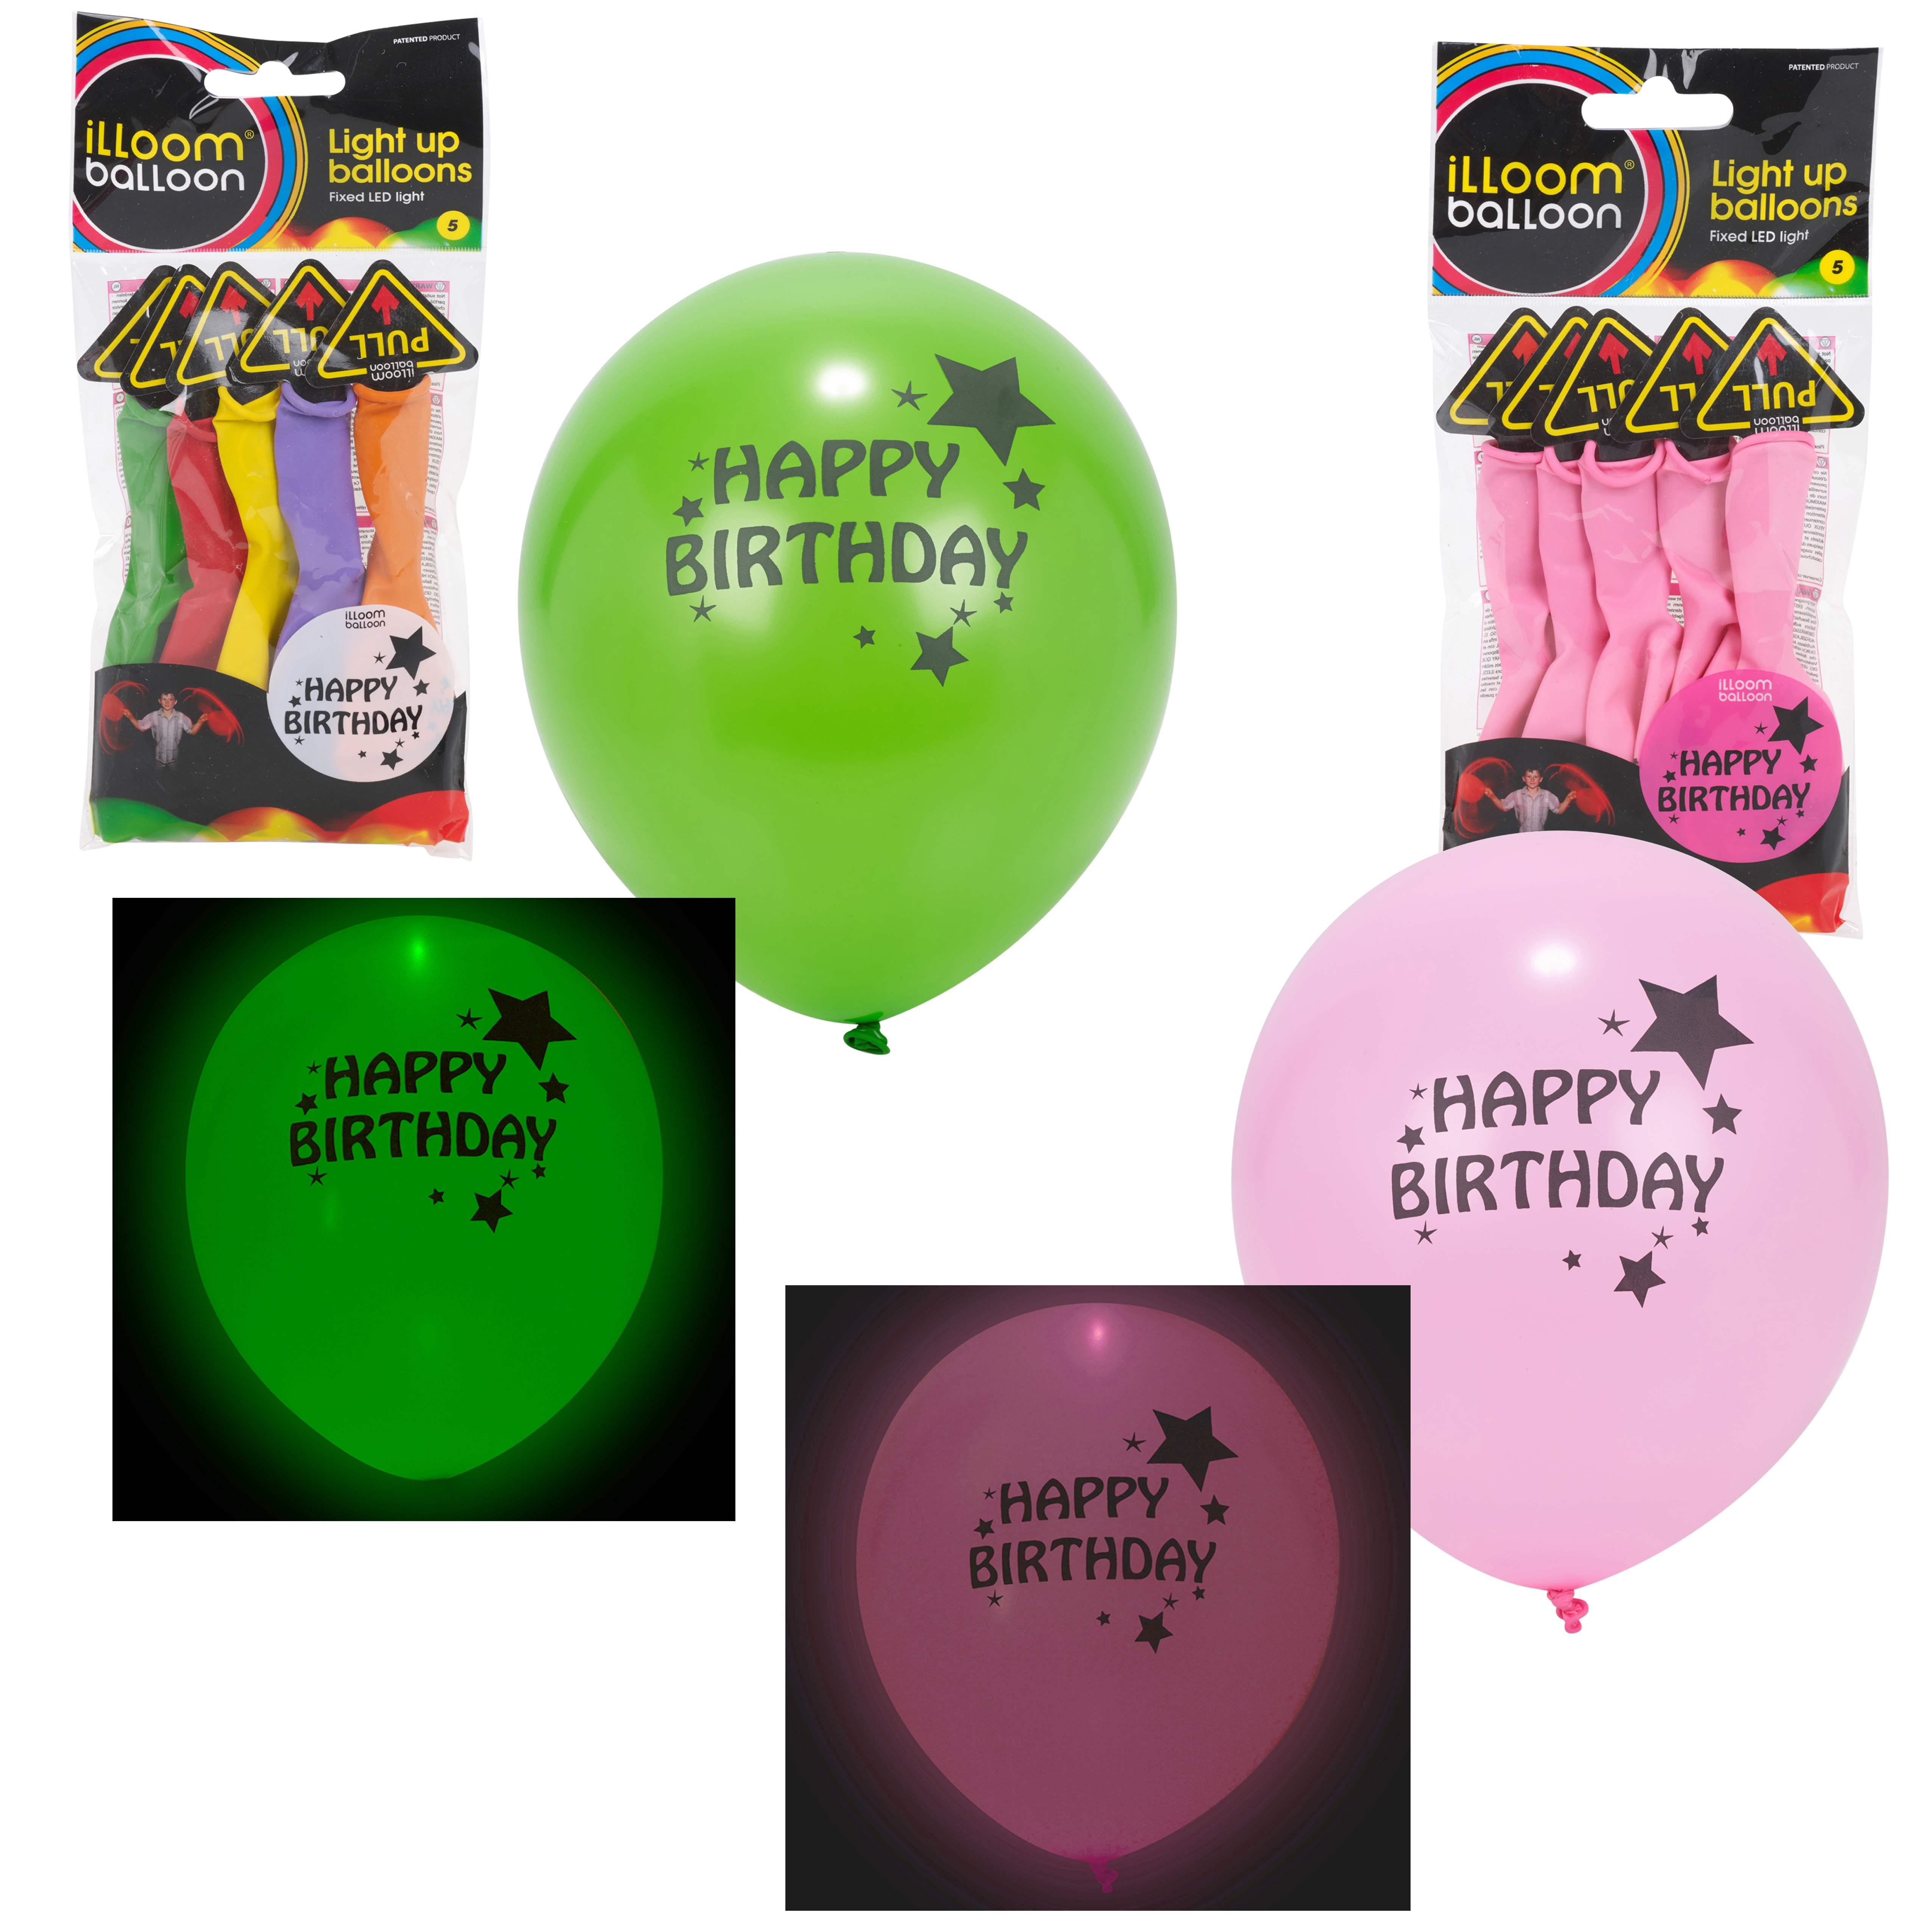 Details About Illoom LED Light Up Glow Balloon Happy Birthday Party Decoration Multi Pack NEW